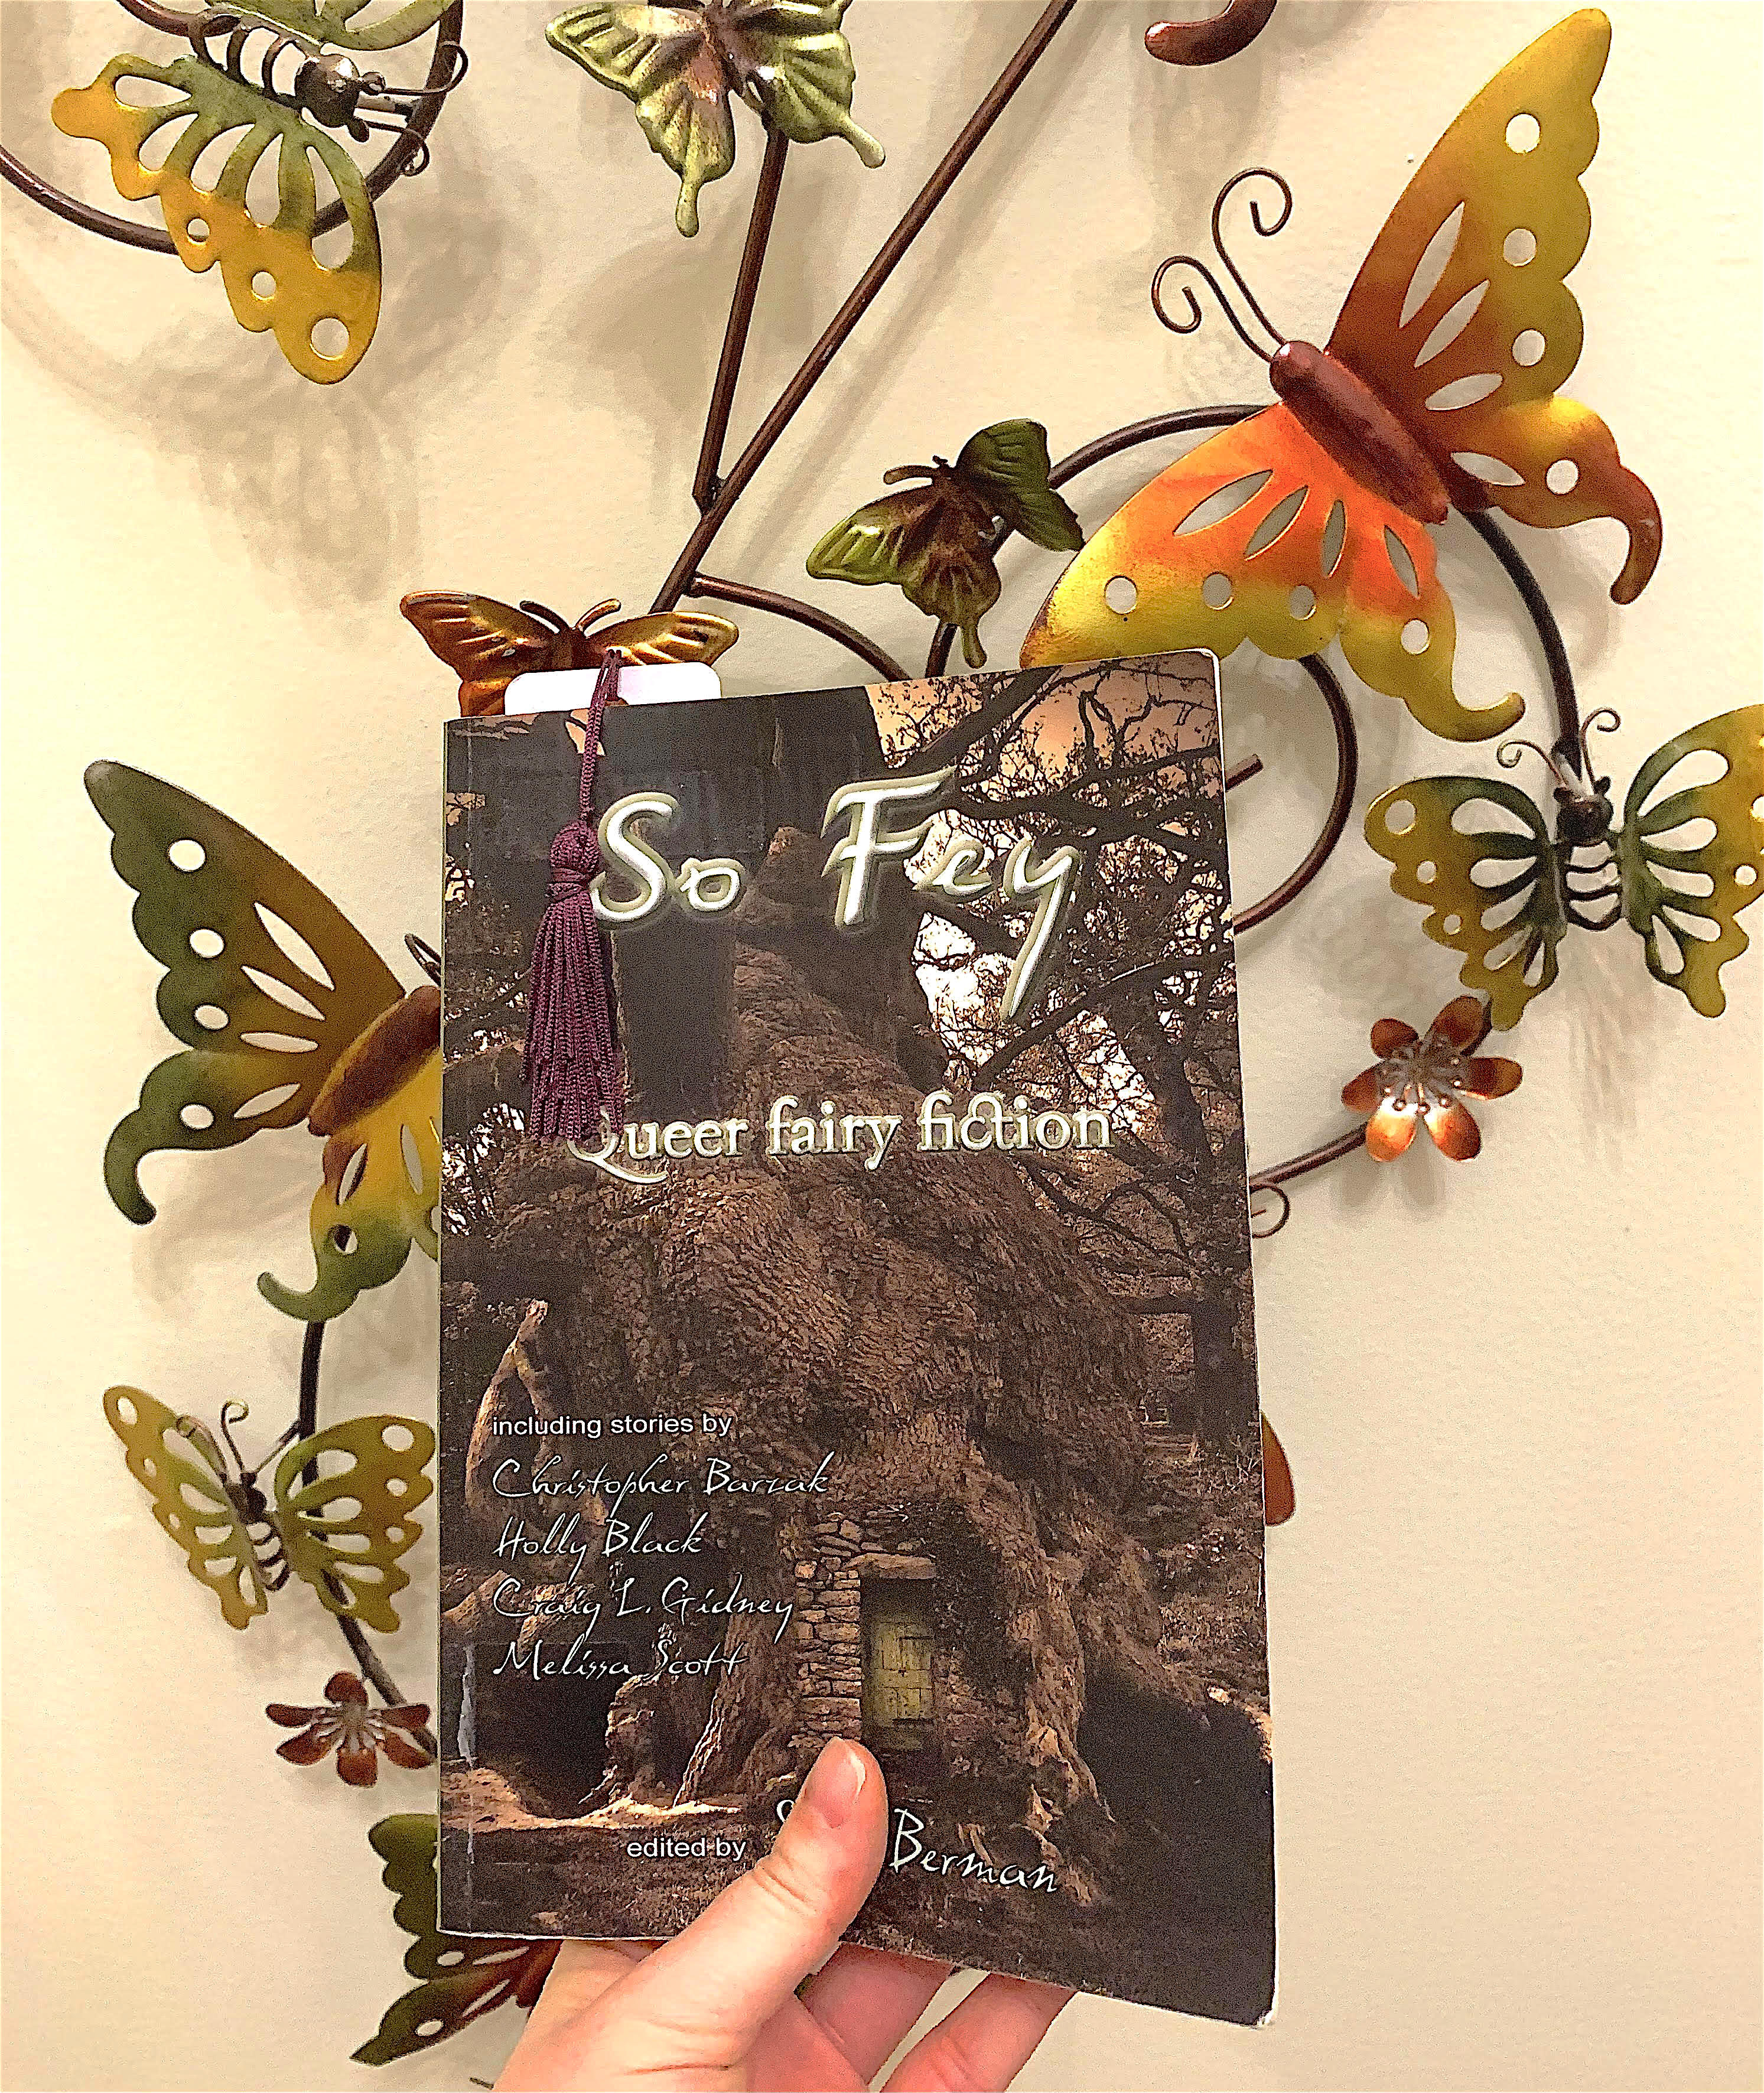 My hand is holding So Fey Queer Fairy Fiction, by Steve Berman, in front of a wall hanging made of metal butterflies in shades of red, gold, and green.